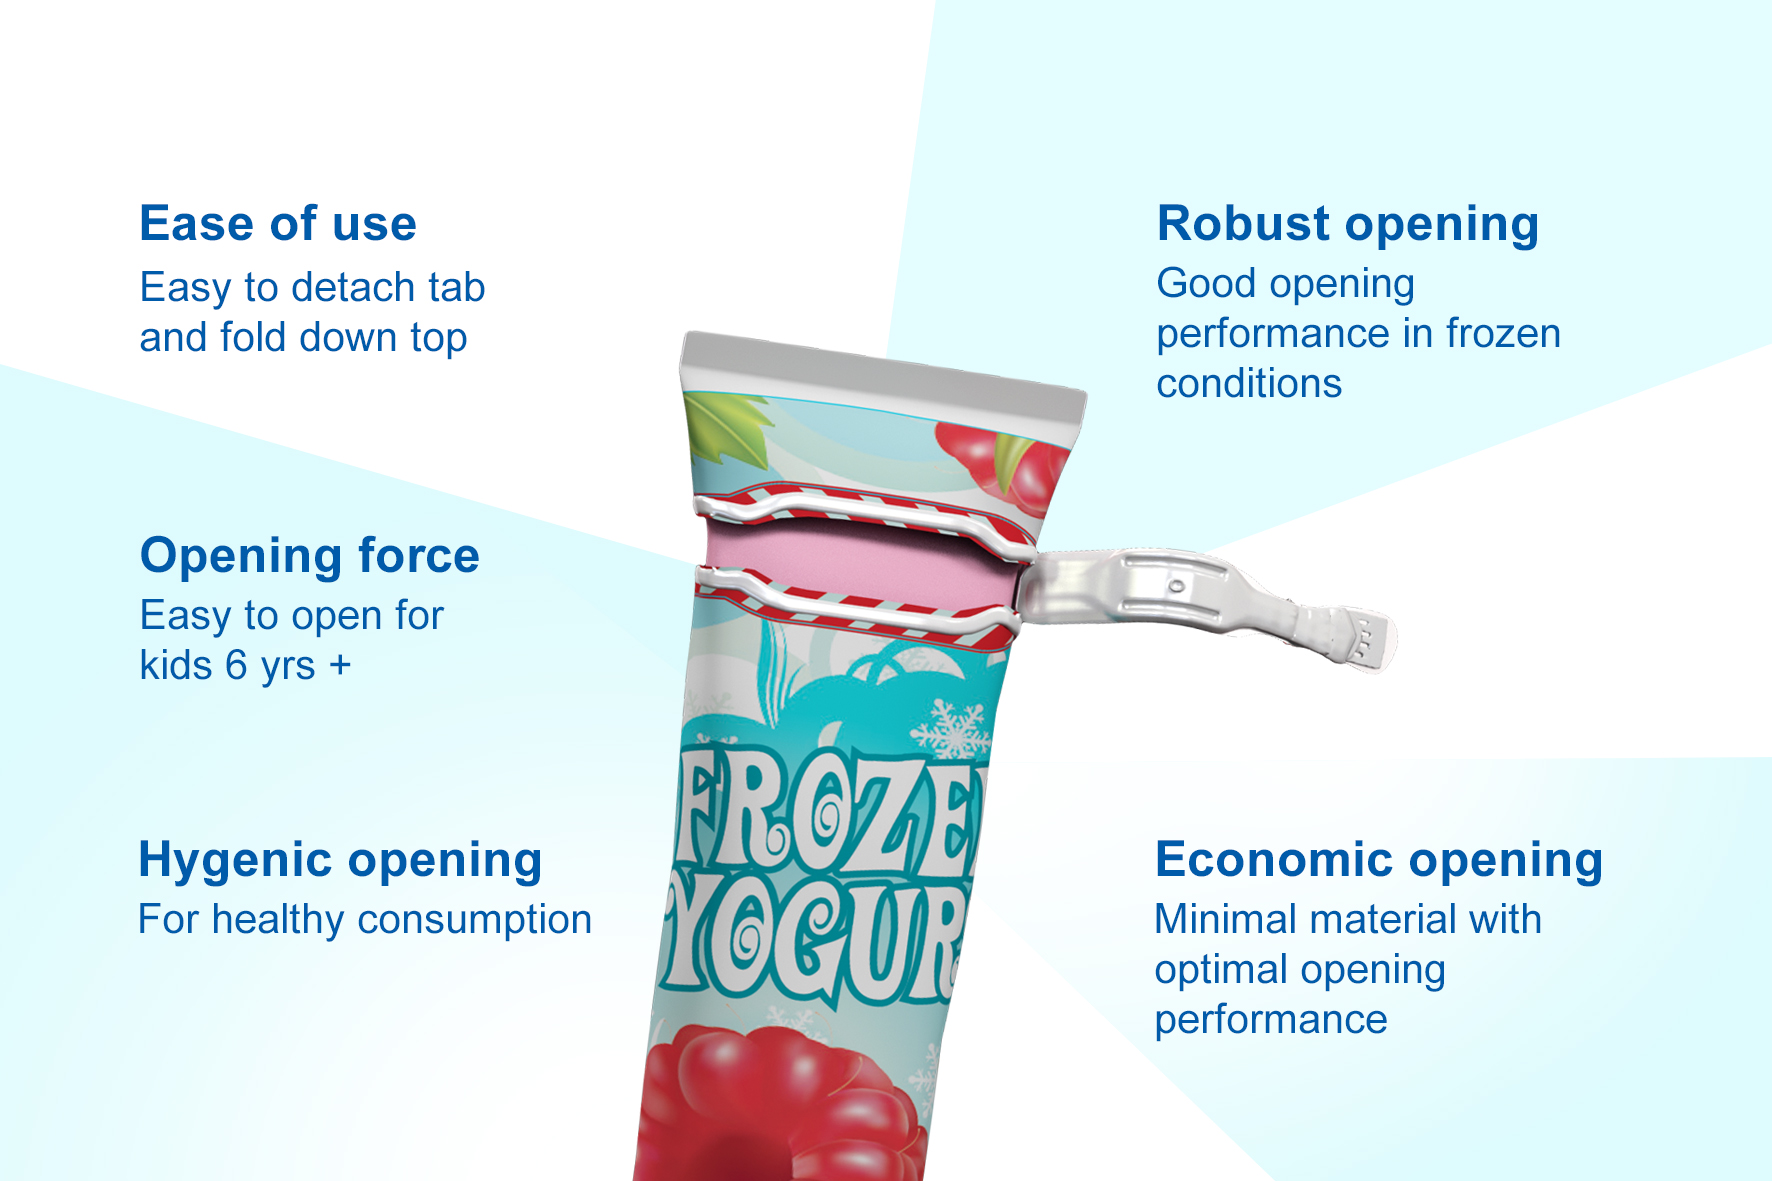 New Tetra Pak packaging brings ice cream opportunity for all